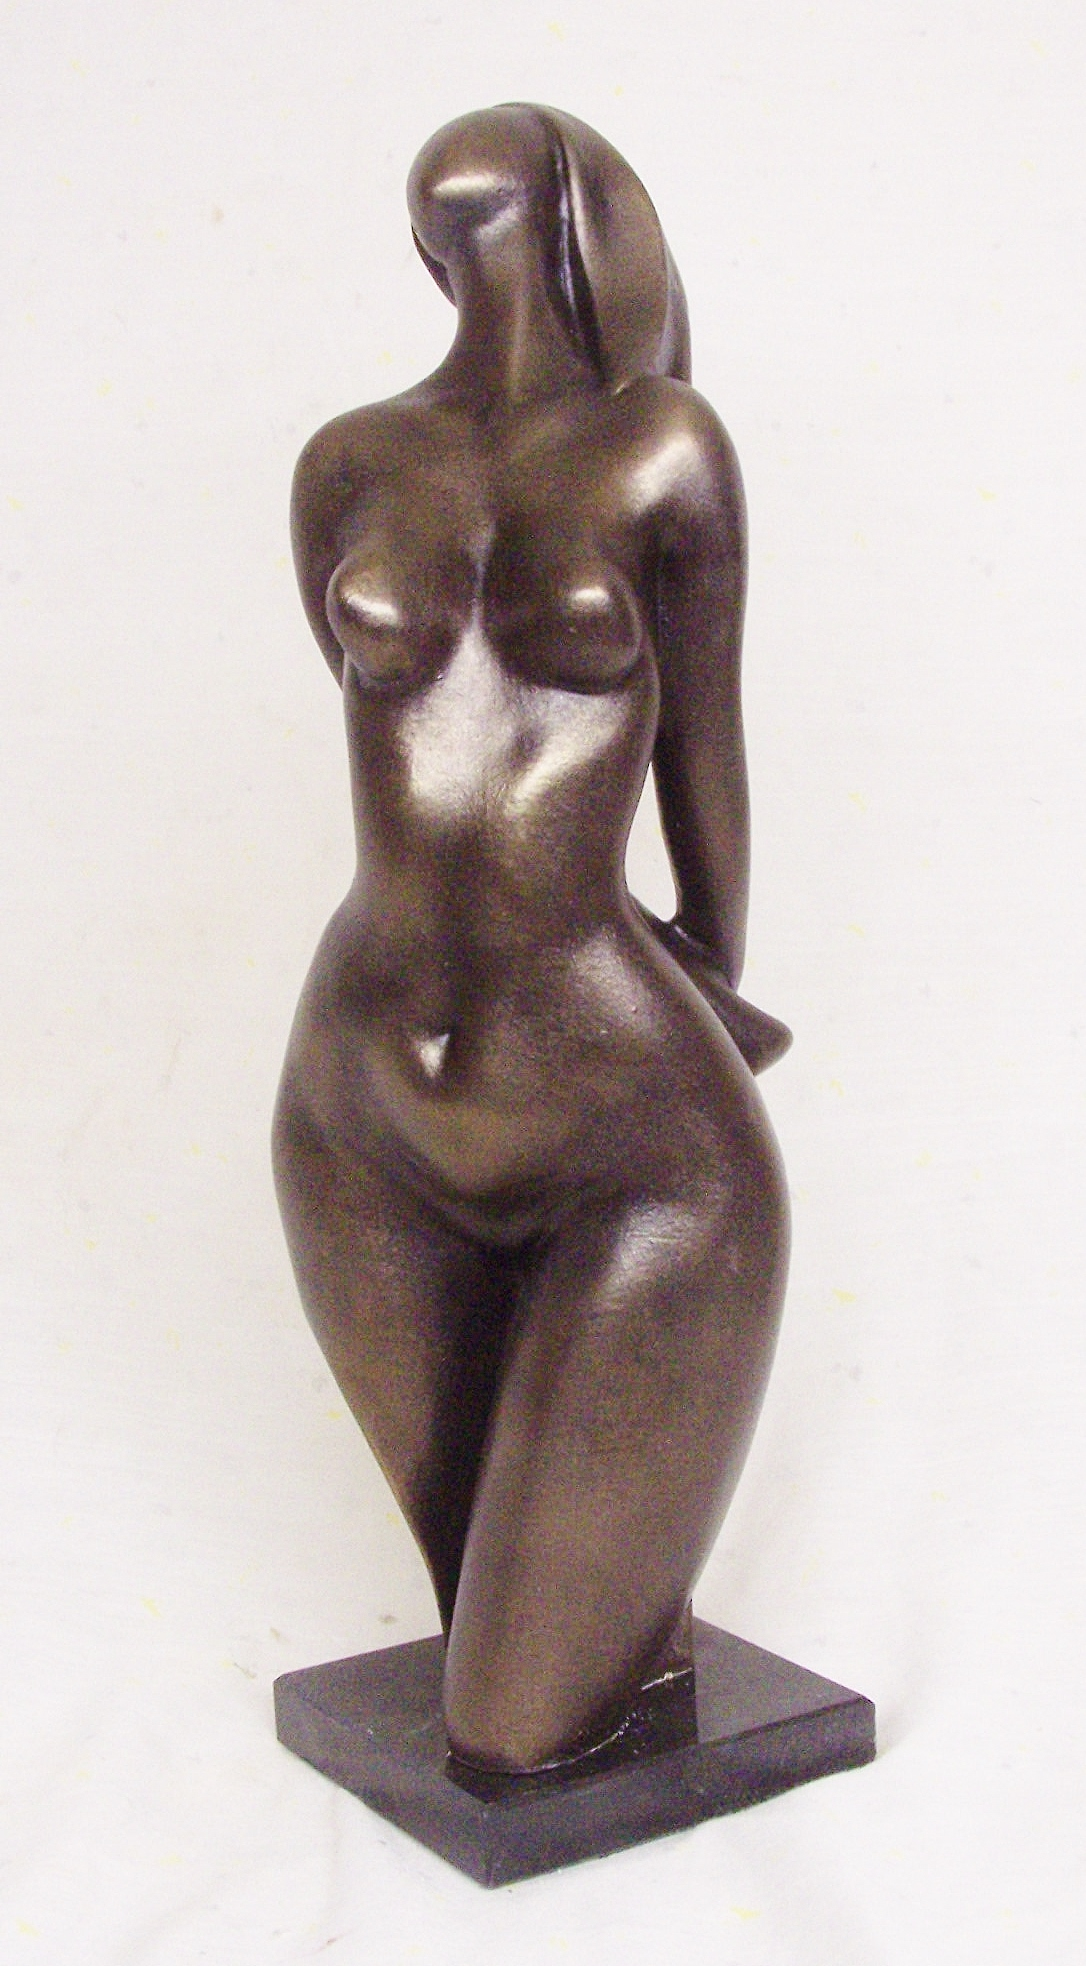 Sculpture of a nude art torso